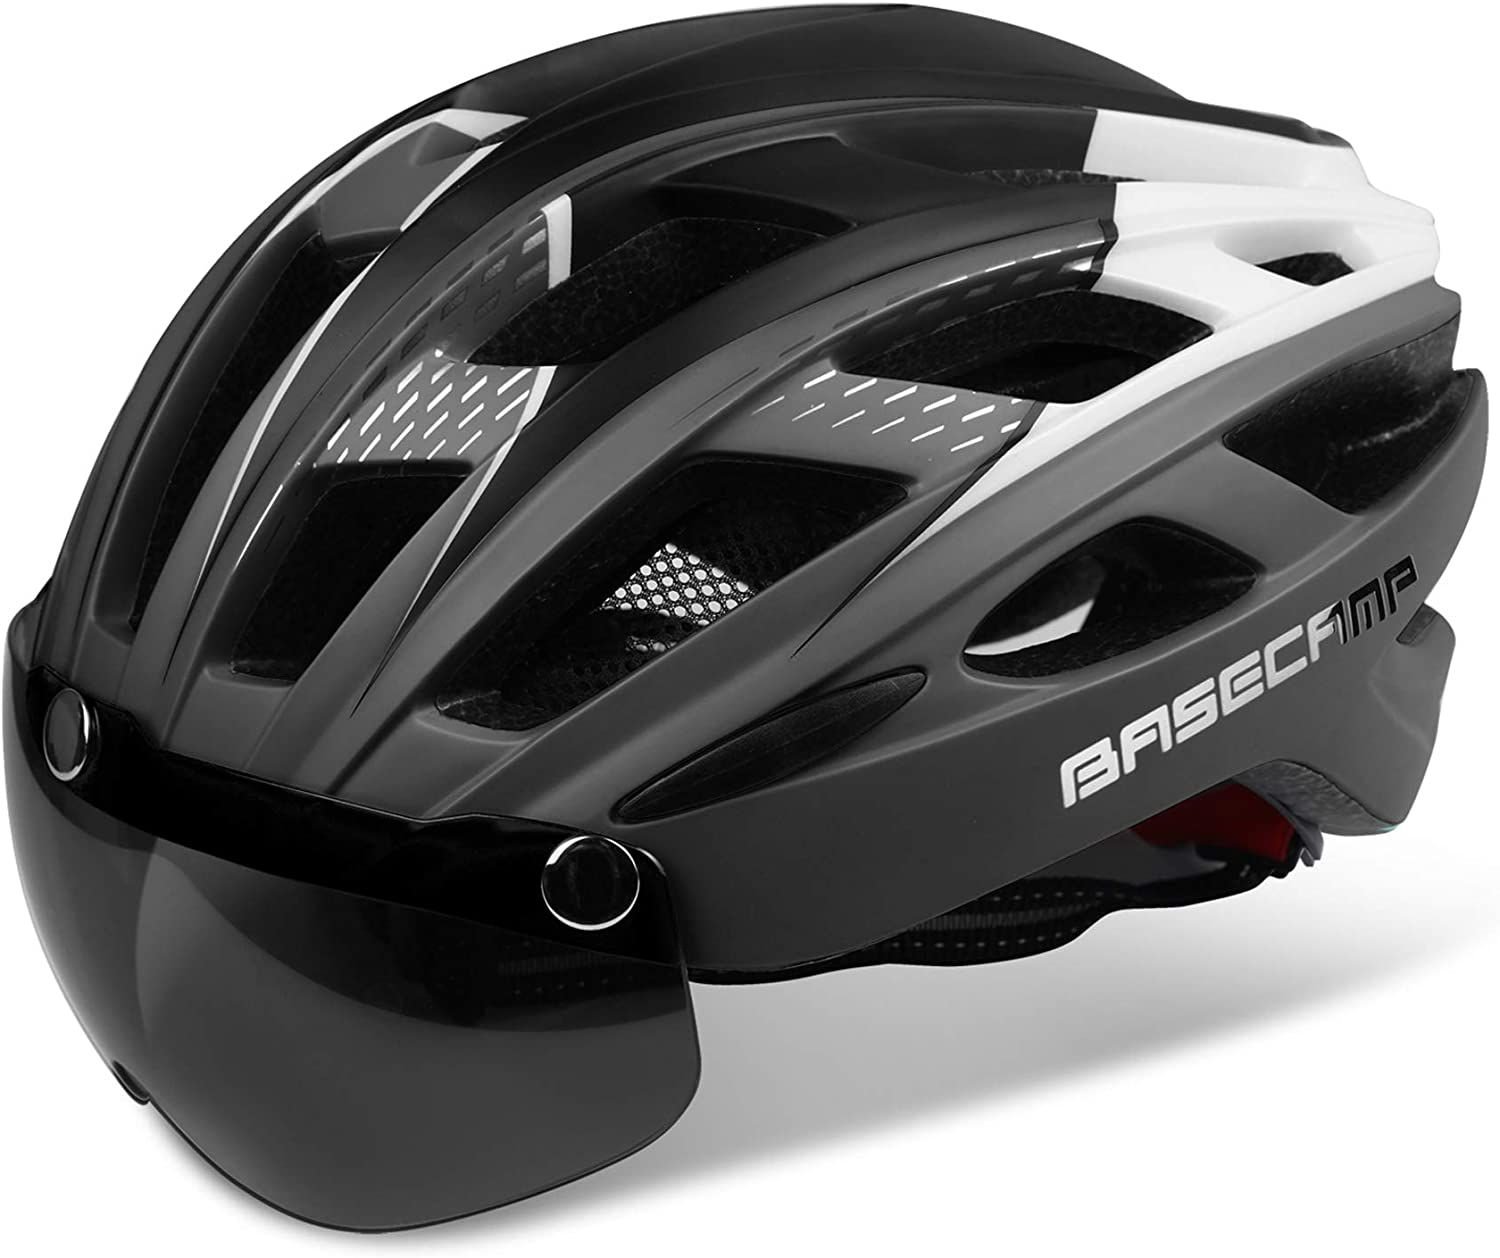 Bike Helmet, Basecamp Bicycle Helmet Cycling/Climbing Helmet with Detachable Magnetic Goggles Visor&Led Back Light&Portable Backpack Adjustable for Men Women Mountain Road Bc-069 : Sports & Outdoors